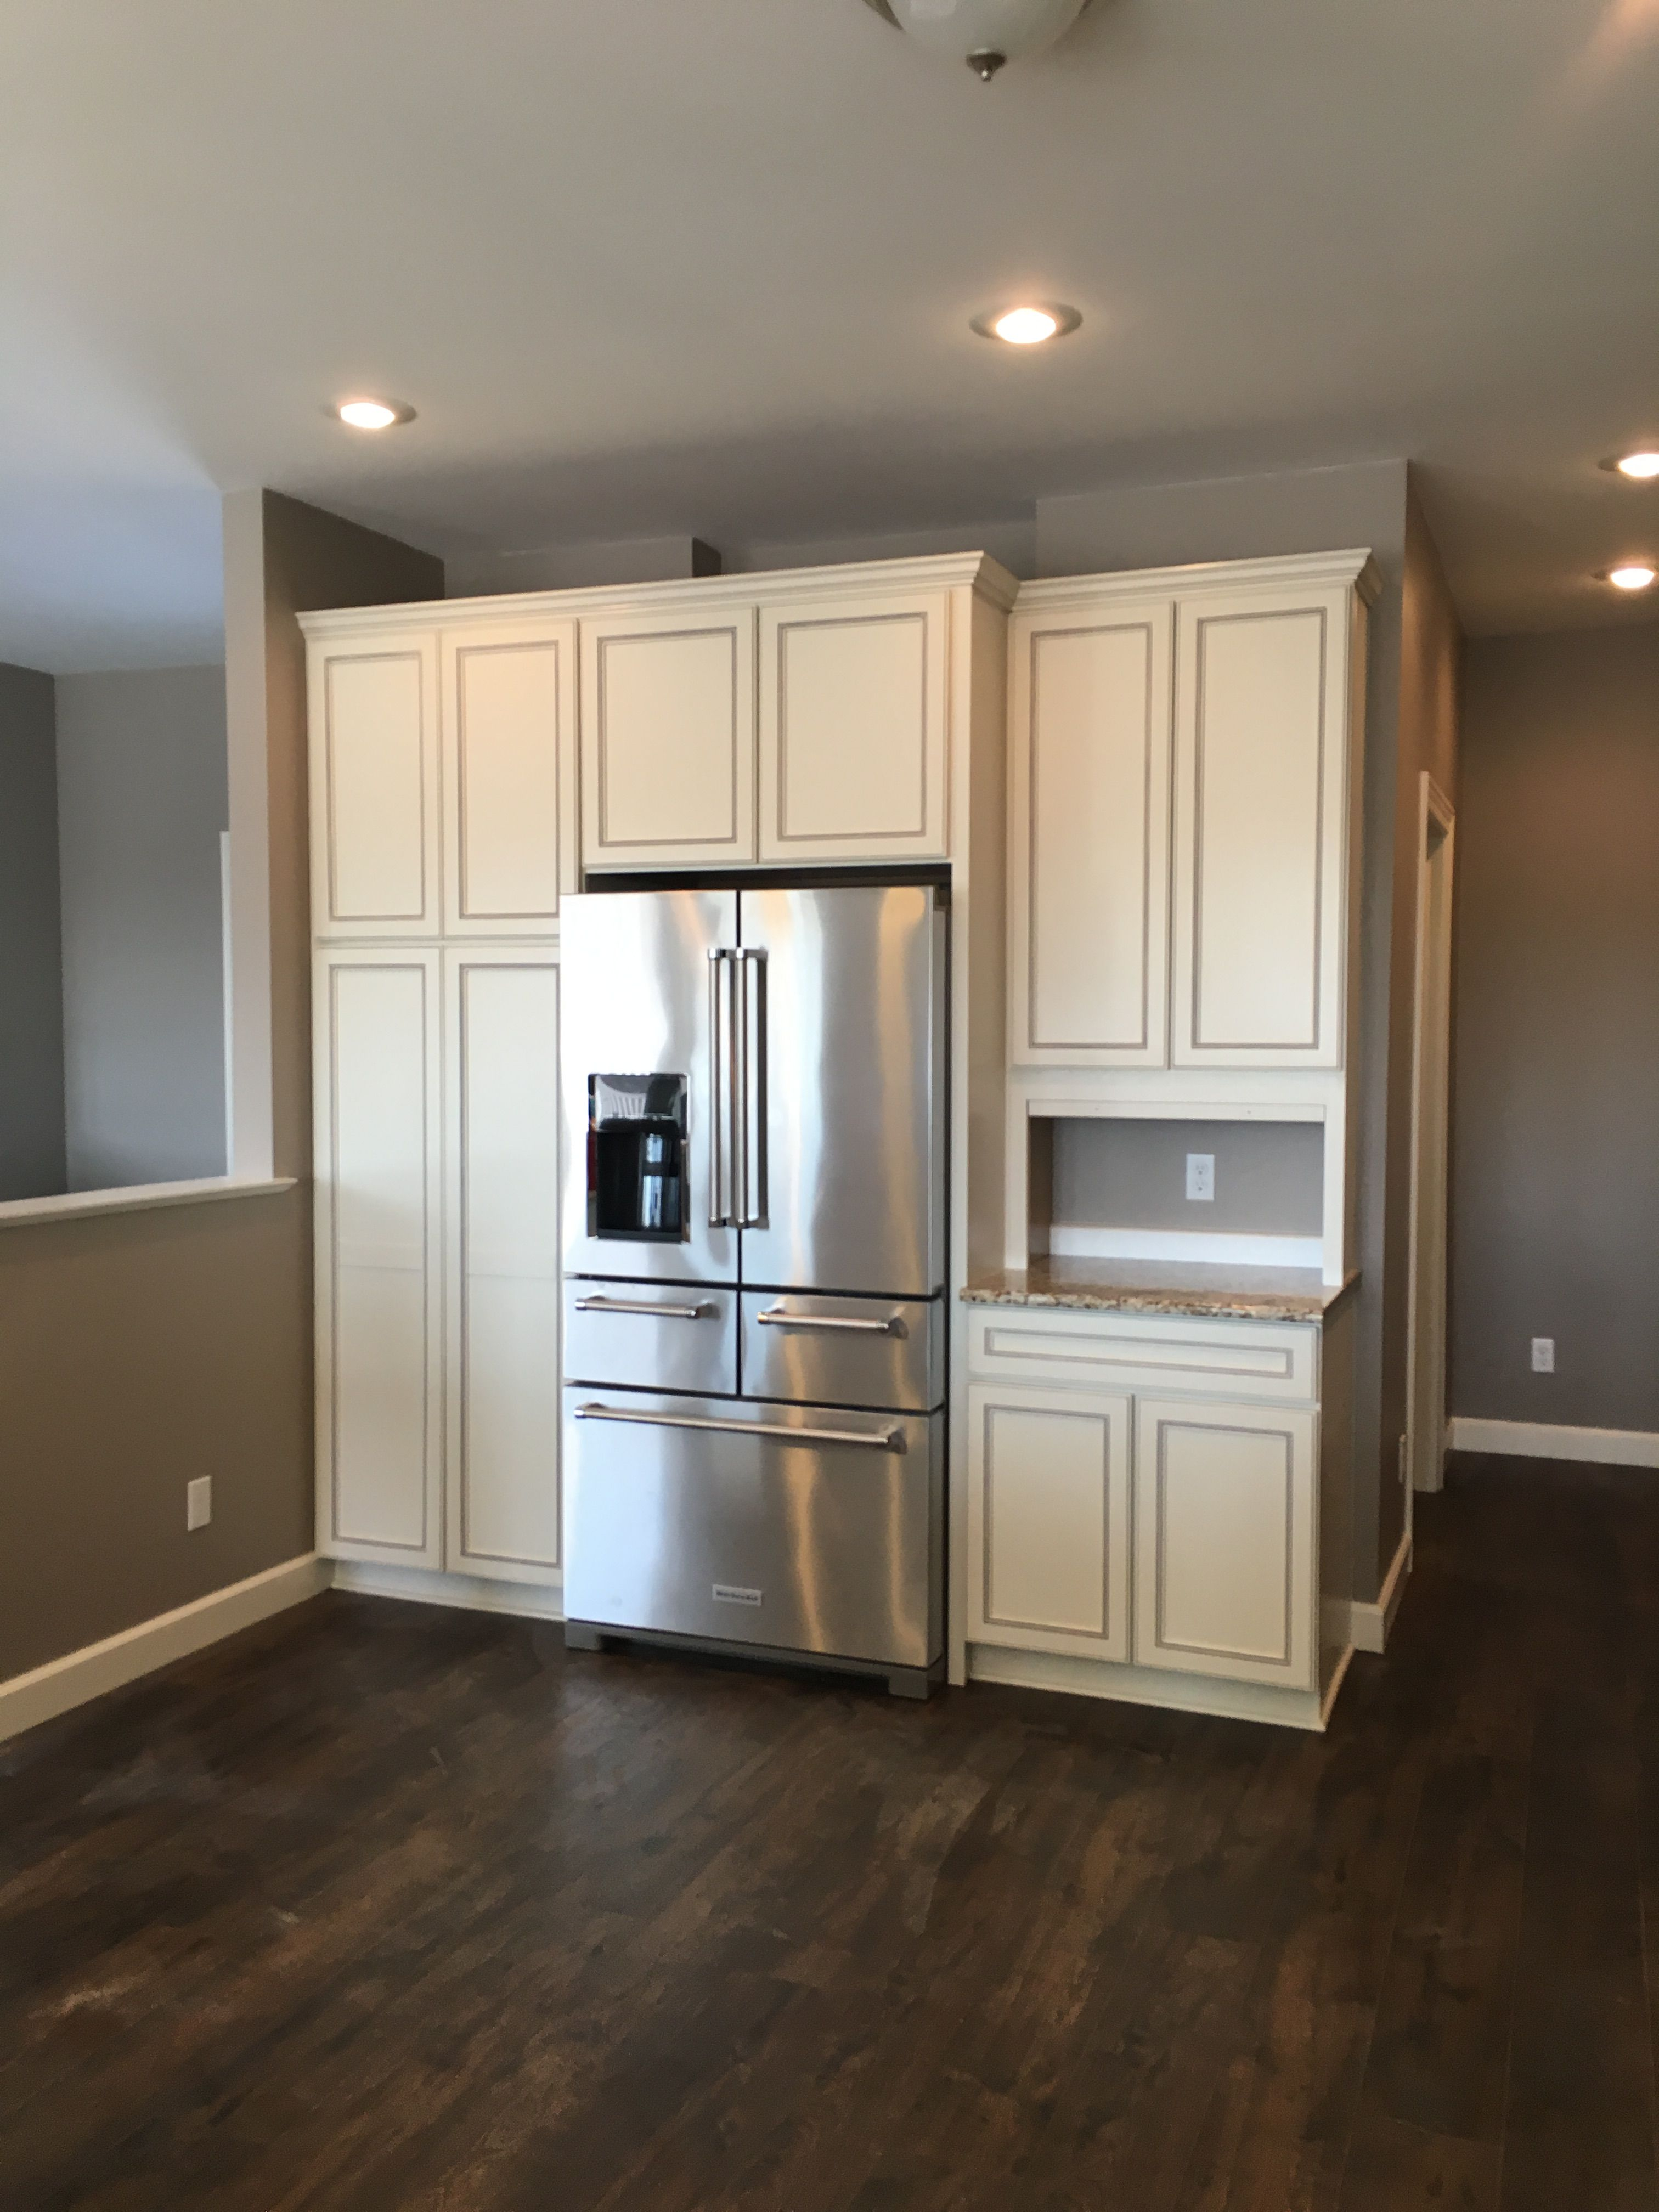 Beautiful Tall White Staggered Cabinets With Stainless Steel Refrigerator No Hardware On Cabinets Dar Tall Kitchen Cabinets Kitchen Remodel Kitchen Cabinets